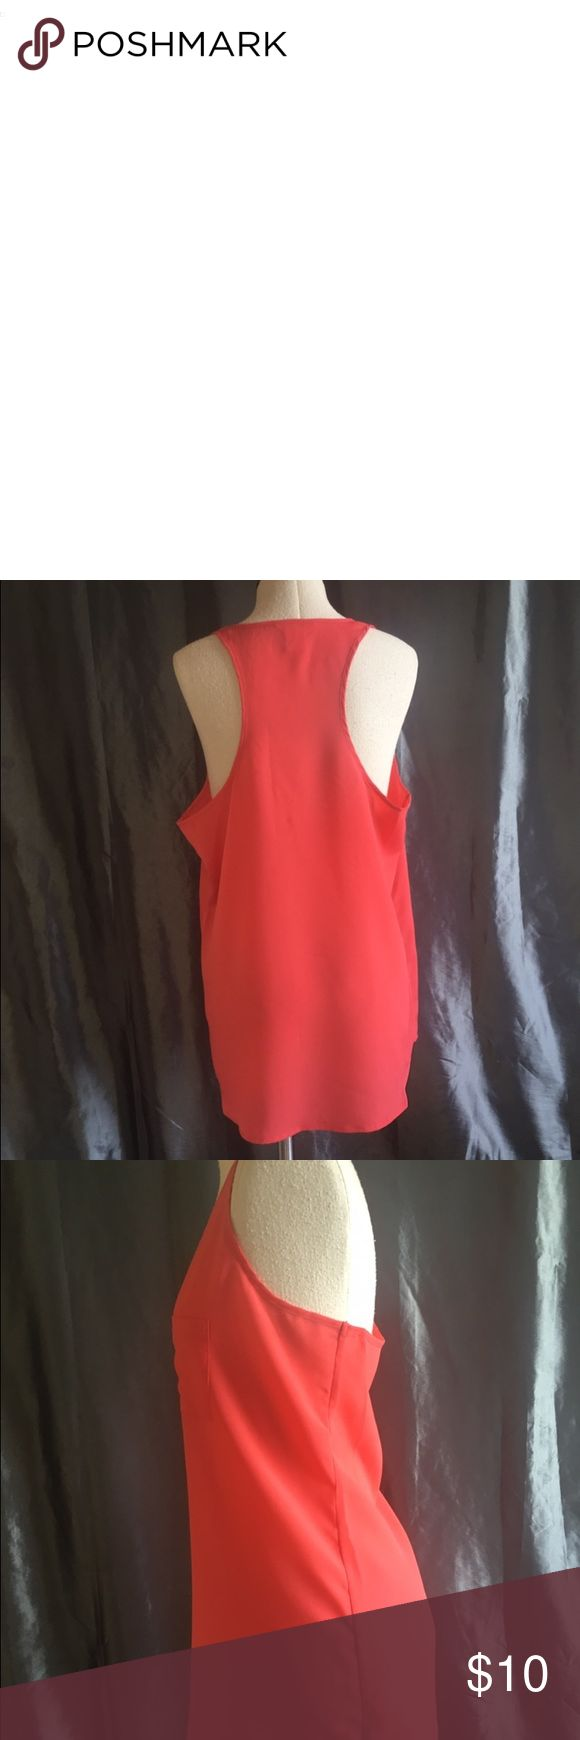 Dressy Joe Fresh Coral Sleeveless Top Size M Dressy Joe Fresh Coral Sleeveless Top Size M 